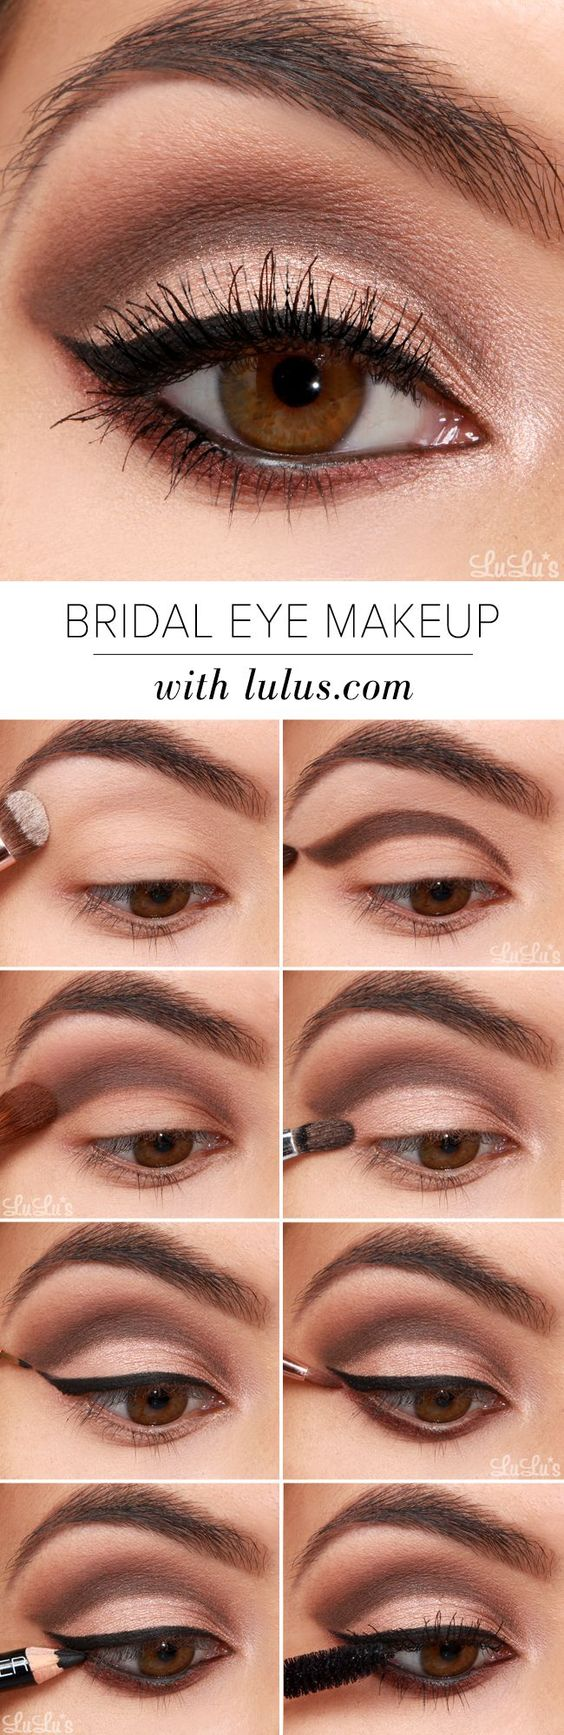 bridal-eye-makeup via